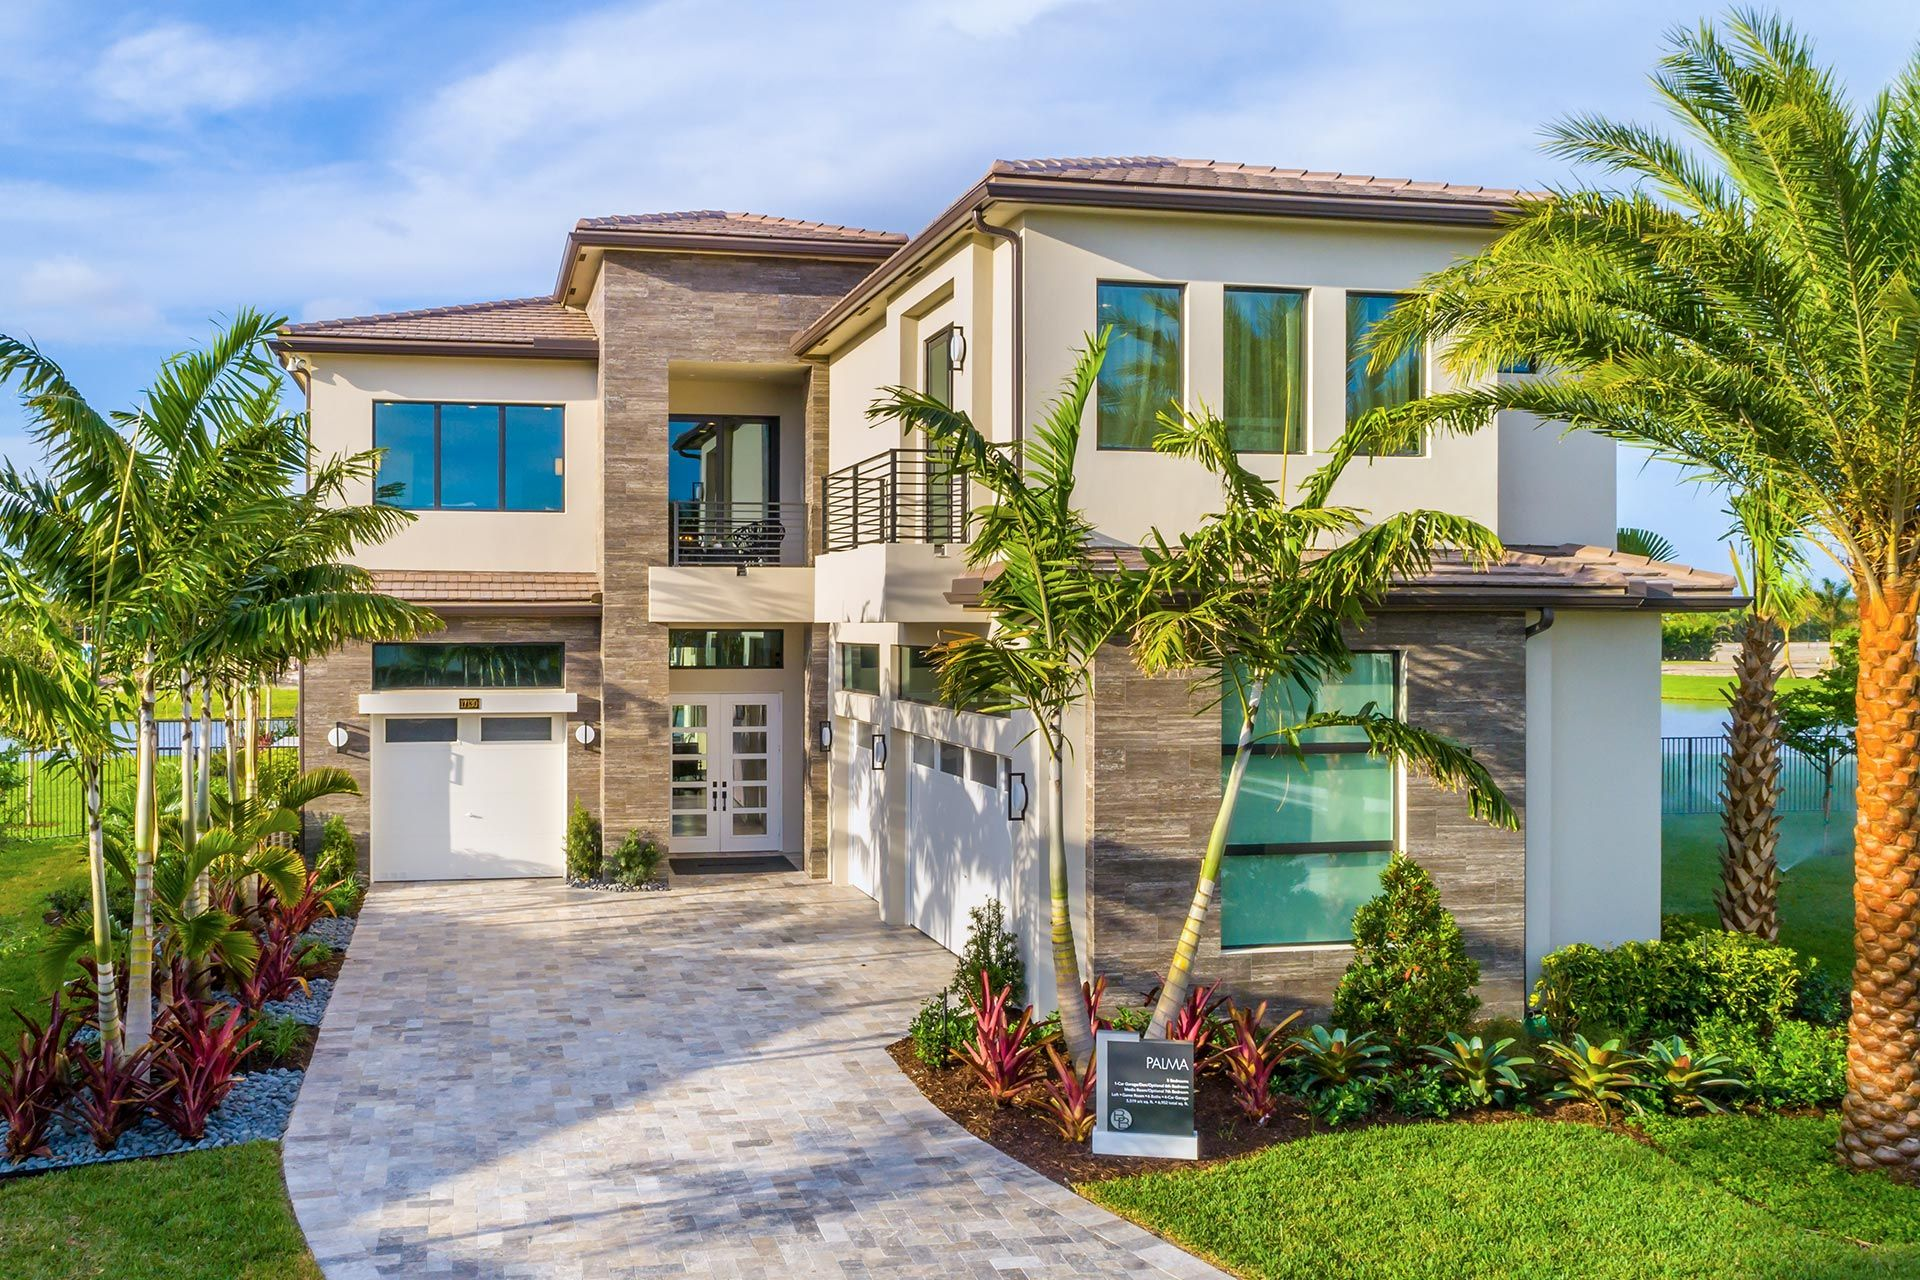 Luxury New Homes In Boca Raton Florida Real Estate Gl Homes Florida Real Estate Small Luxury Homes Florida Home